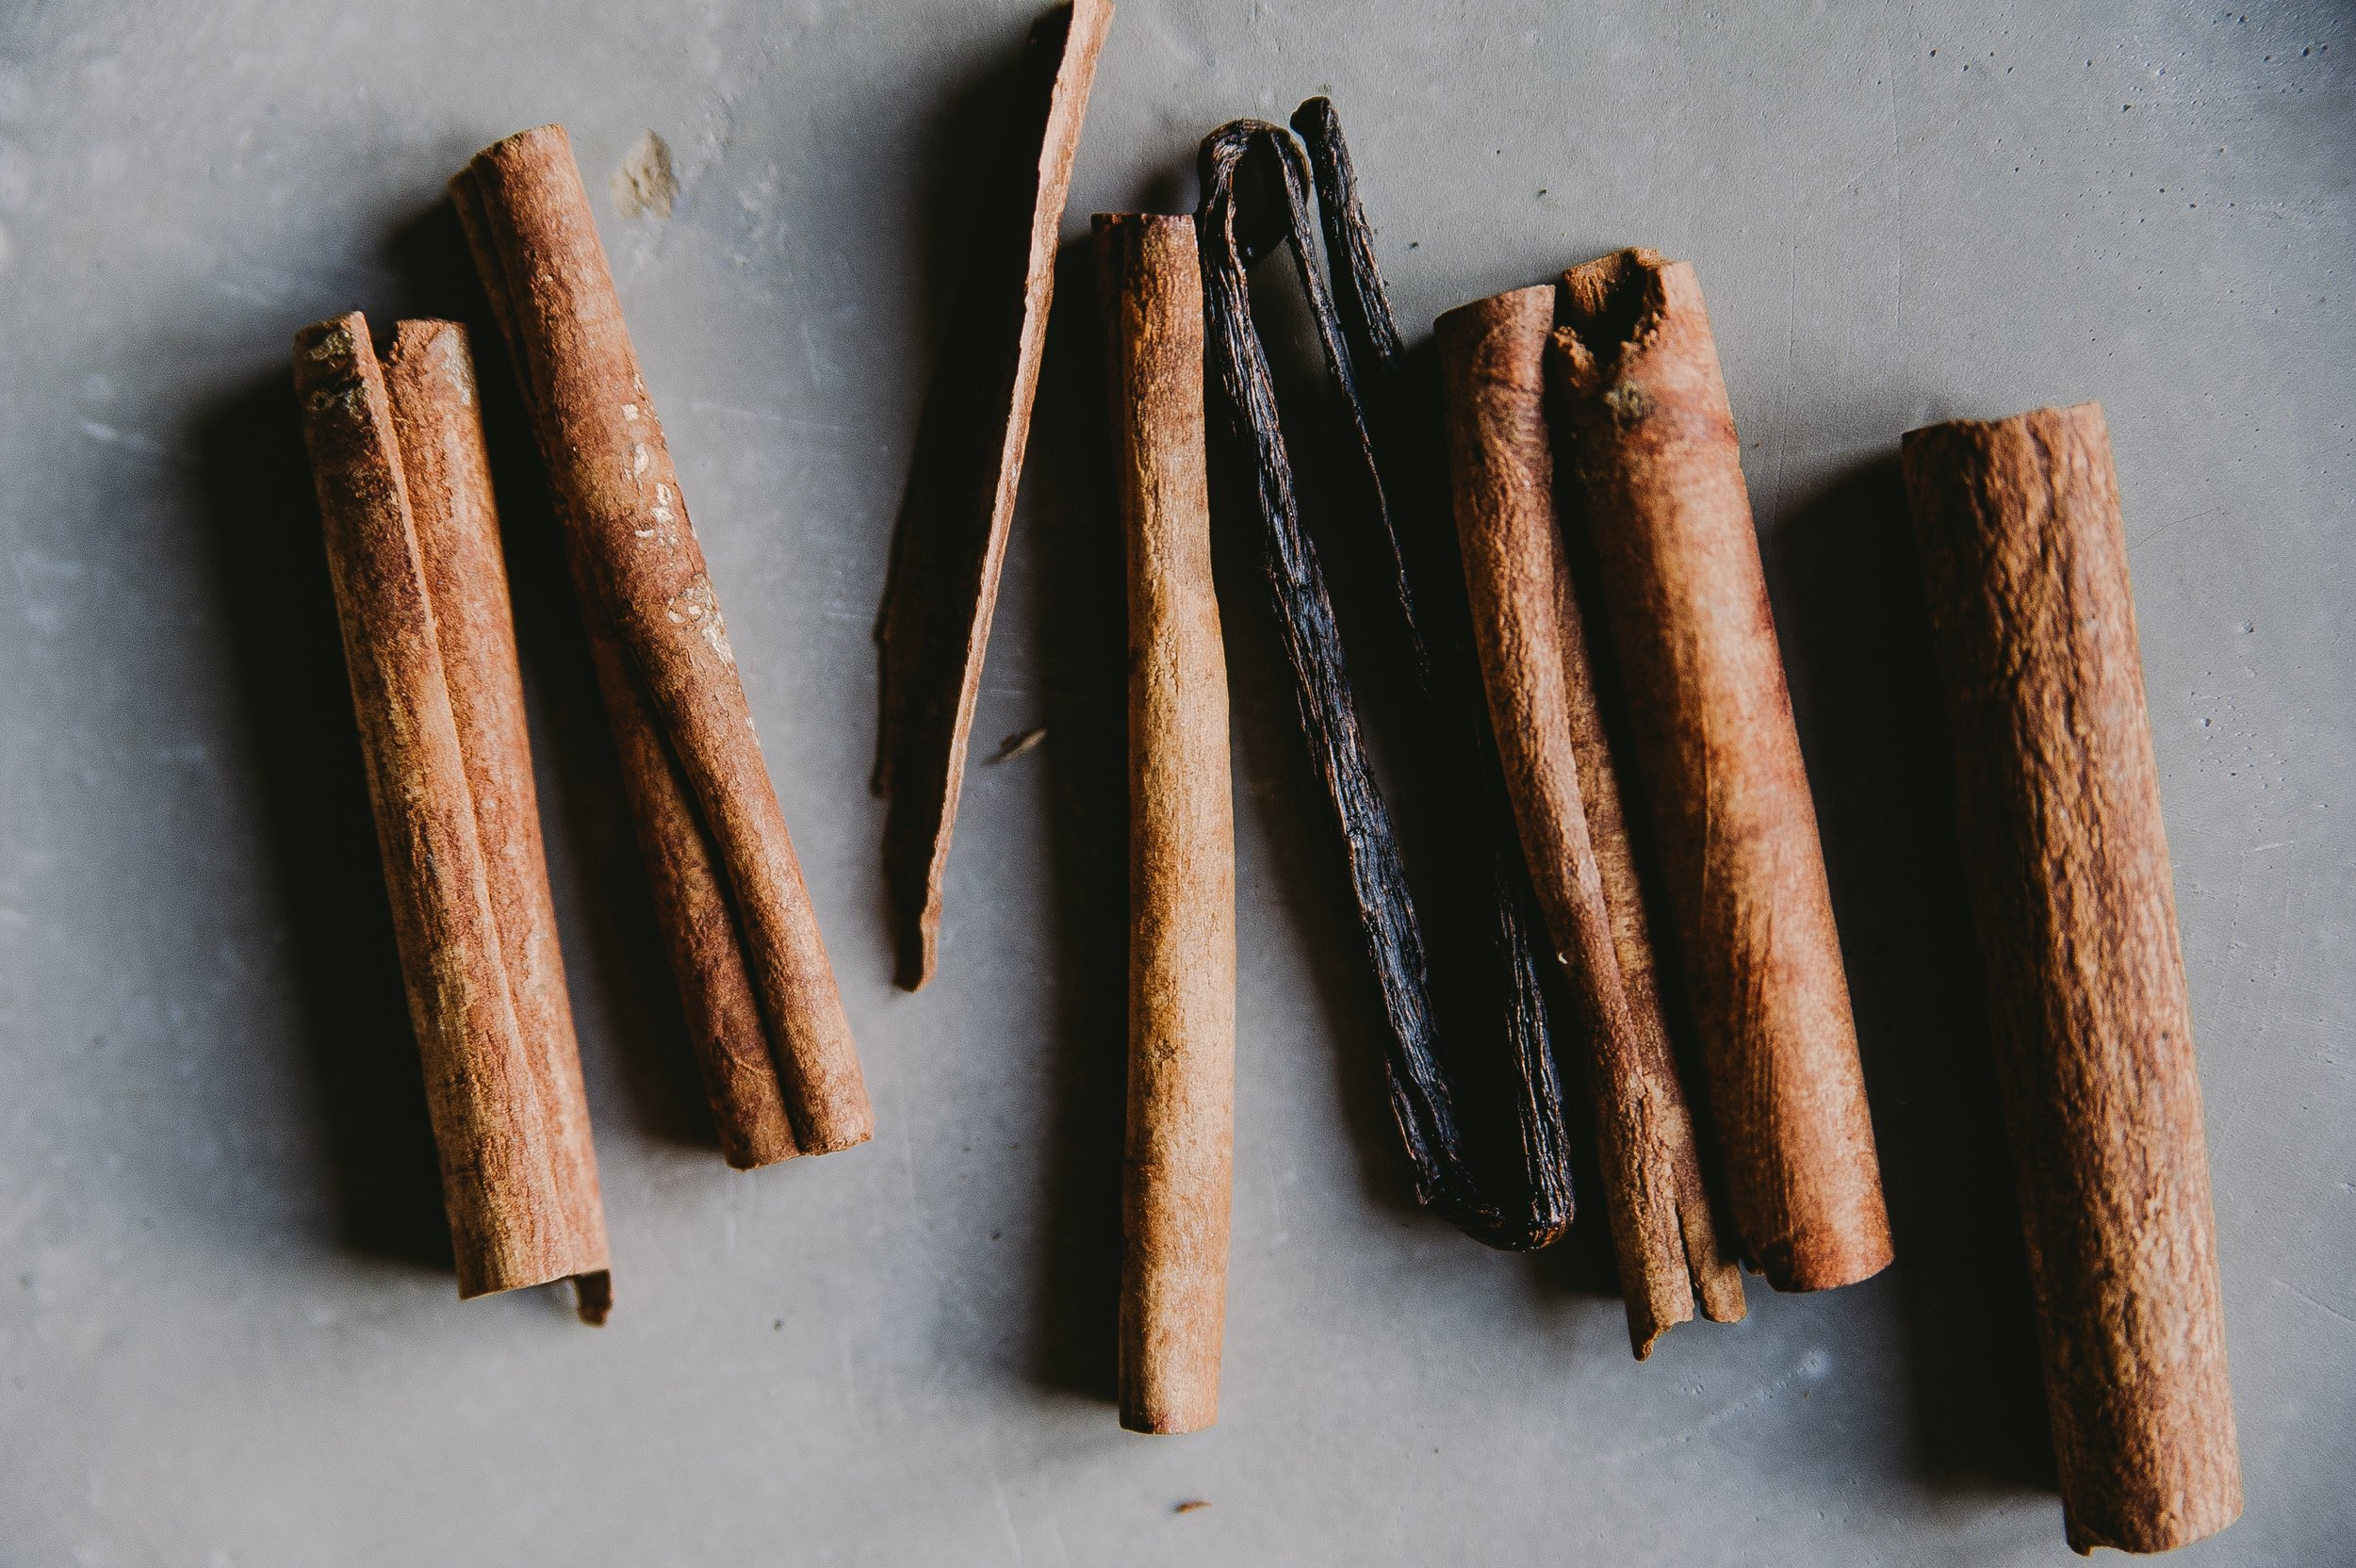 touched with cinnamon - You can't spell 'chai' without 'cinnamon'. Prized for it's medical benefits for thousands of years, modern science now confirms the same. High in compound 'cinnamaldehyde', it helps increase metabolism, protect from free-radical damage & may even assist in lowering bad cholesterol levels. Now, that's what we call a true 'super' spice.